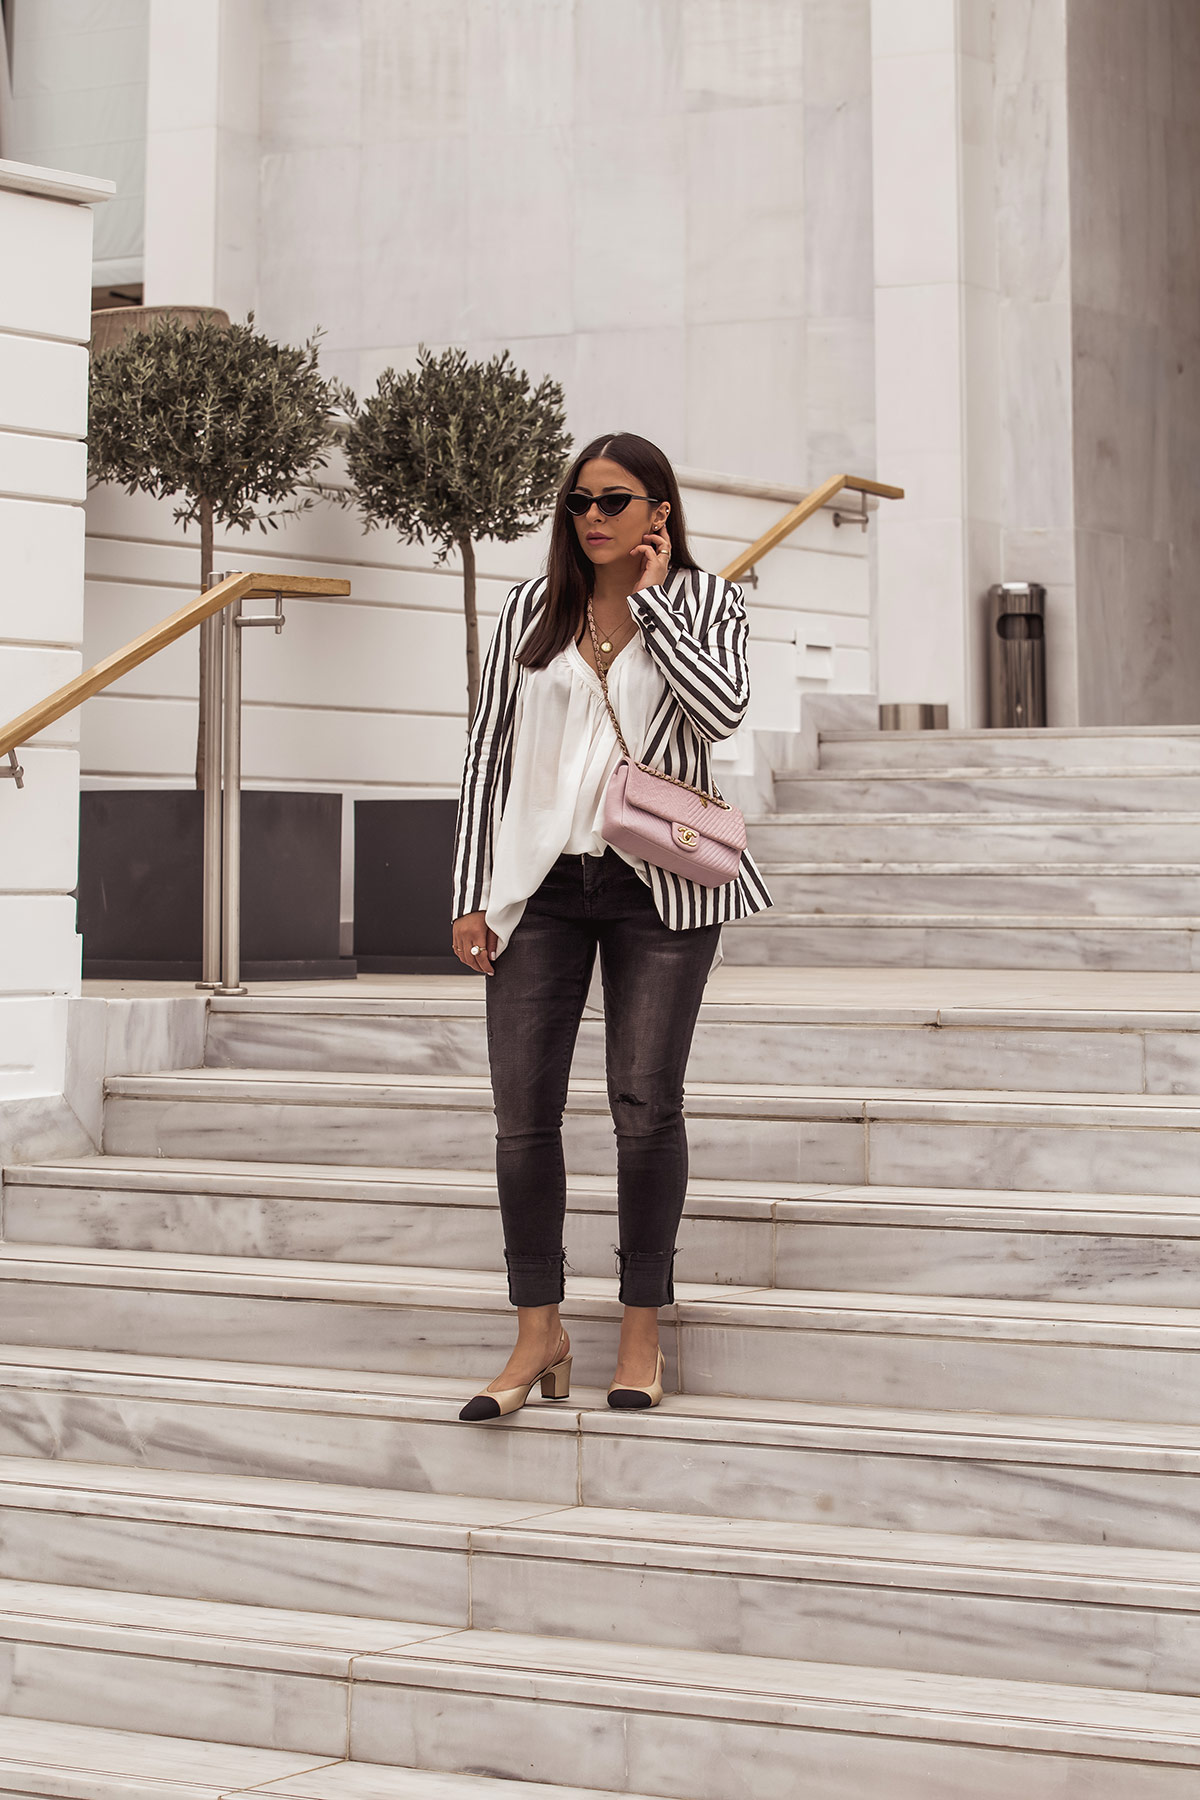 How To Wear A Striped Blazer For Spring - Stella Asteria - Fashion & Lifestyle Blogger